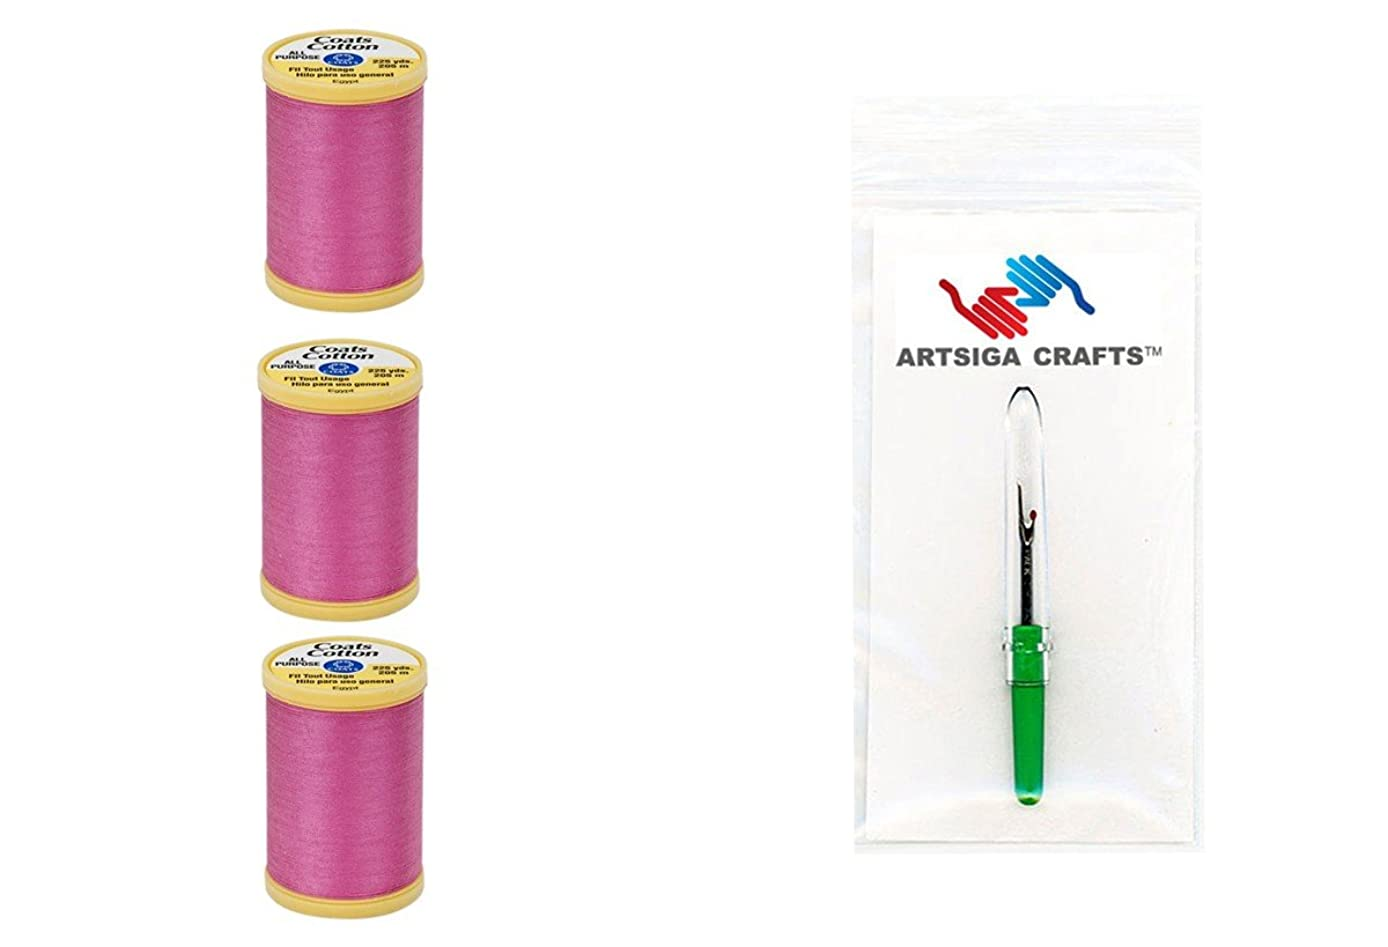 Coats & Clark General Purpose 100% Egyptian Cotton Thread 225 Yds (3-Pack) Hot Pink Bundle with 1 Artsiga Crafts Seam Ripper S970-1840-3P